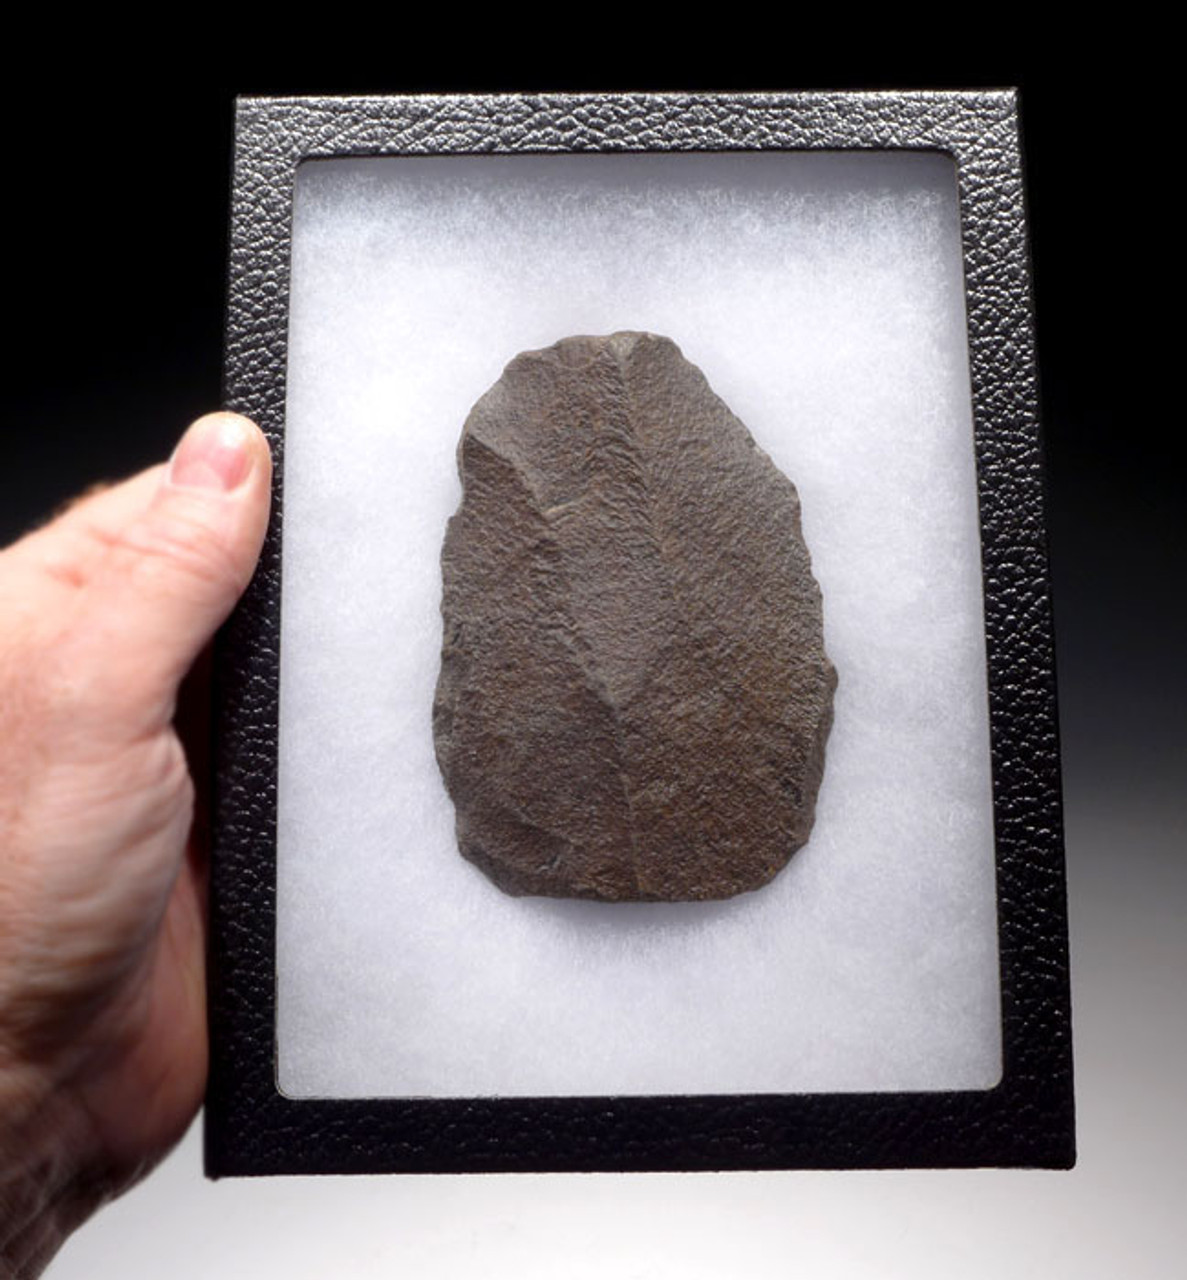 HOMO ERECTUS STONE AGE SCRAPER TOOL FROM THE ACHEULEAN PERIOD OF AFRICA *ACH187